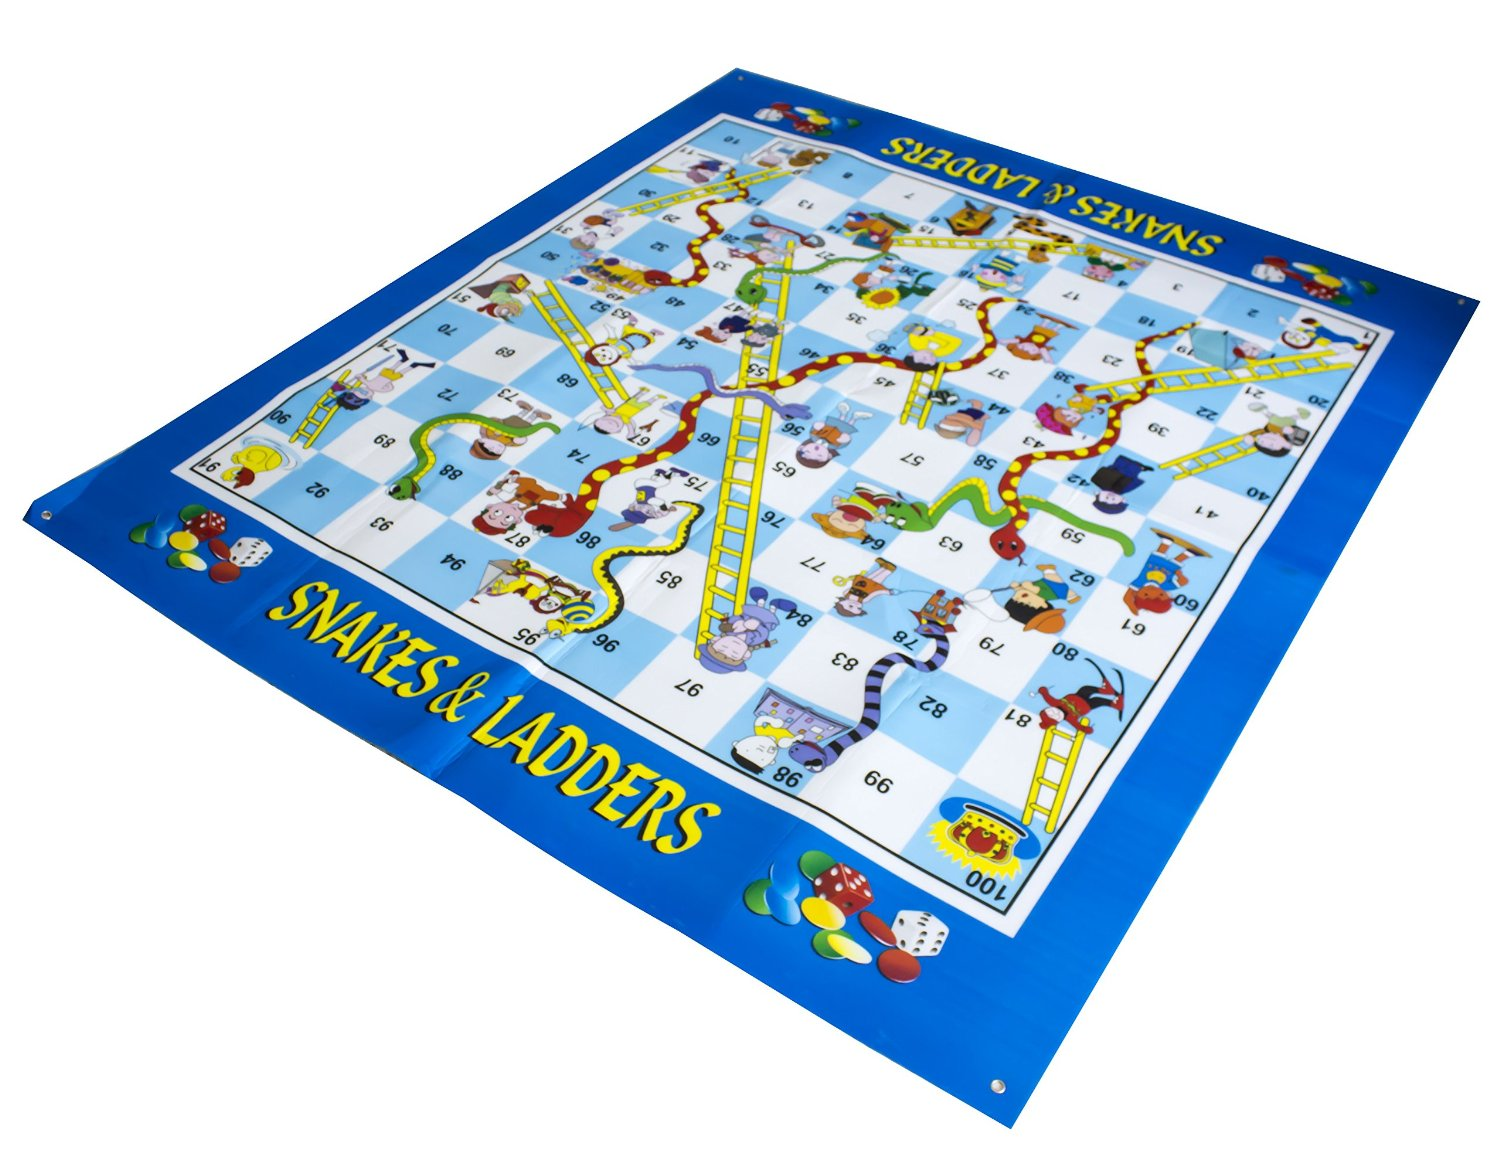 Giant Snakes& Ladders Game Outdoor Activity Fun It 20cm Inflatable Dice It Can Provide Hours Of